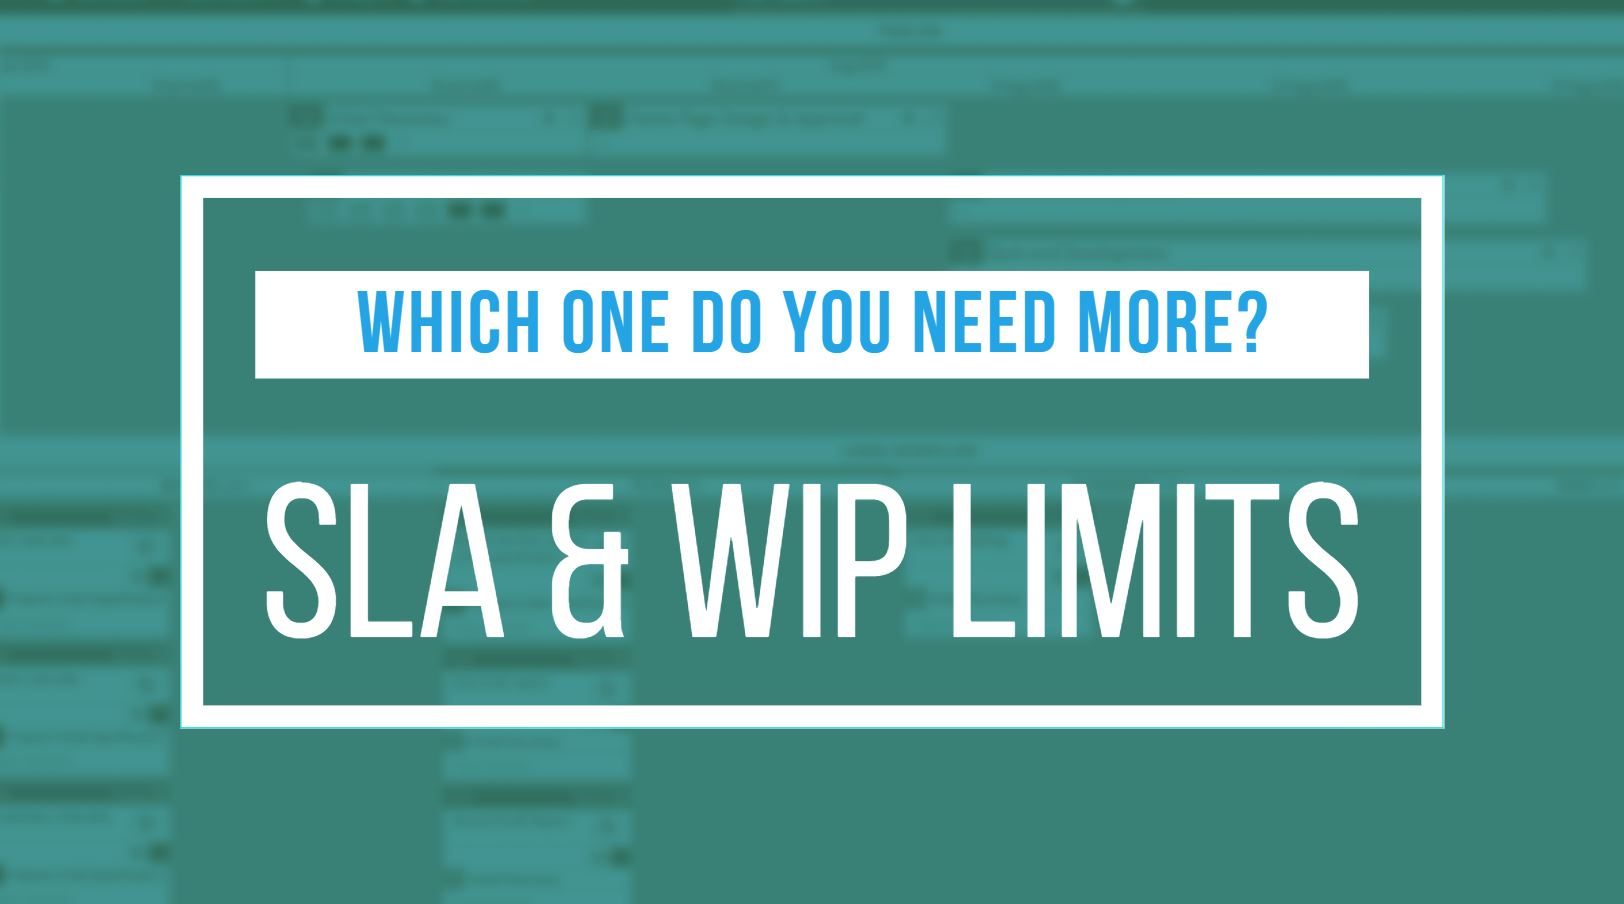 sla and wip limits